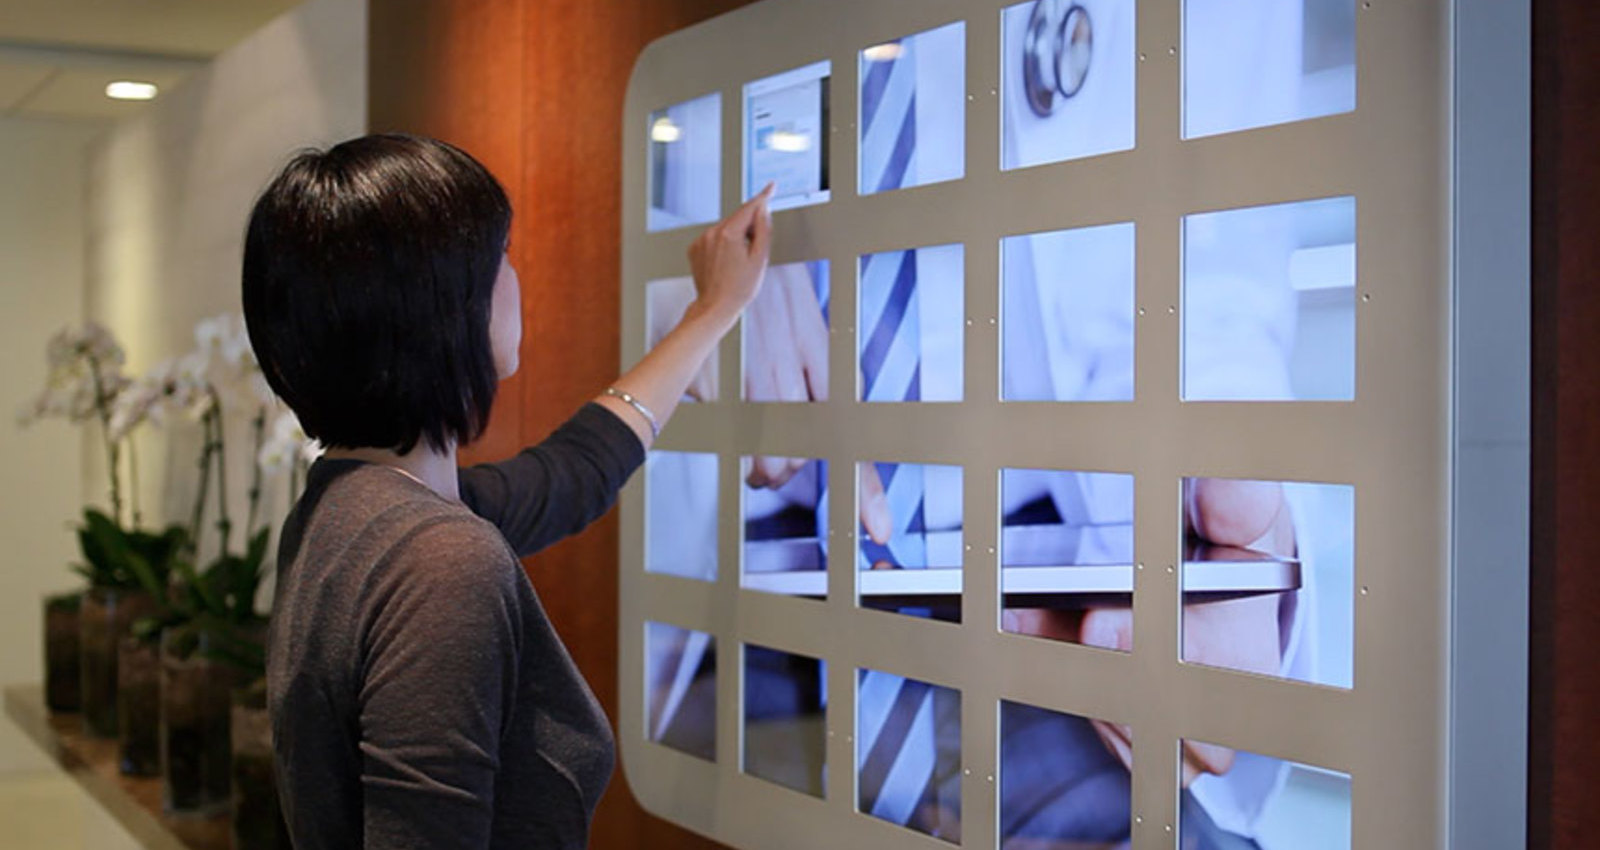 The Pritzker Group iPad Wall & Handheld App